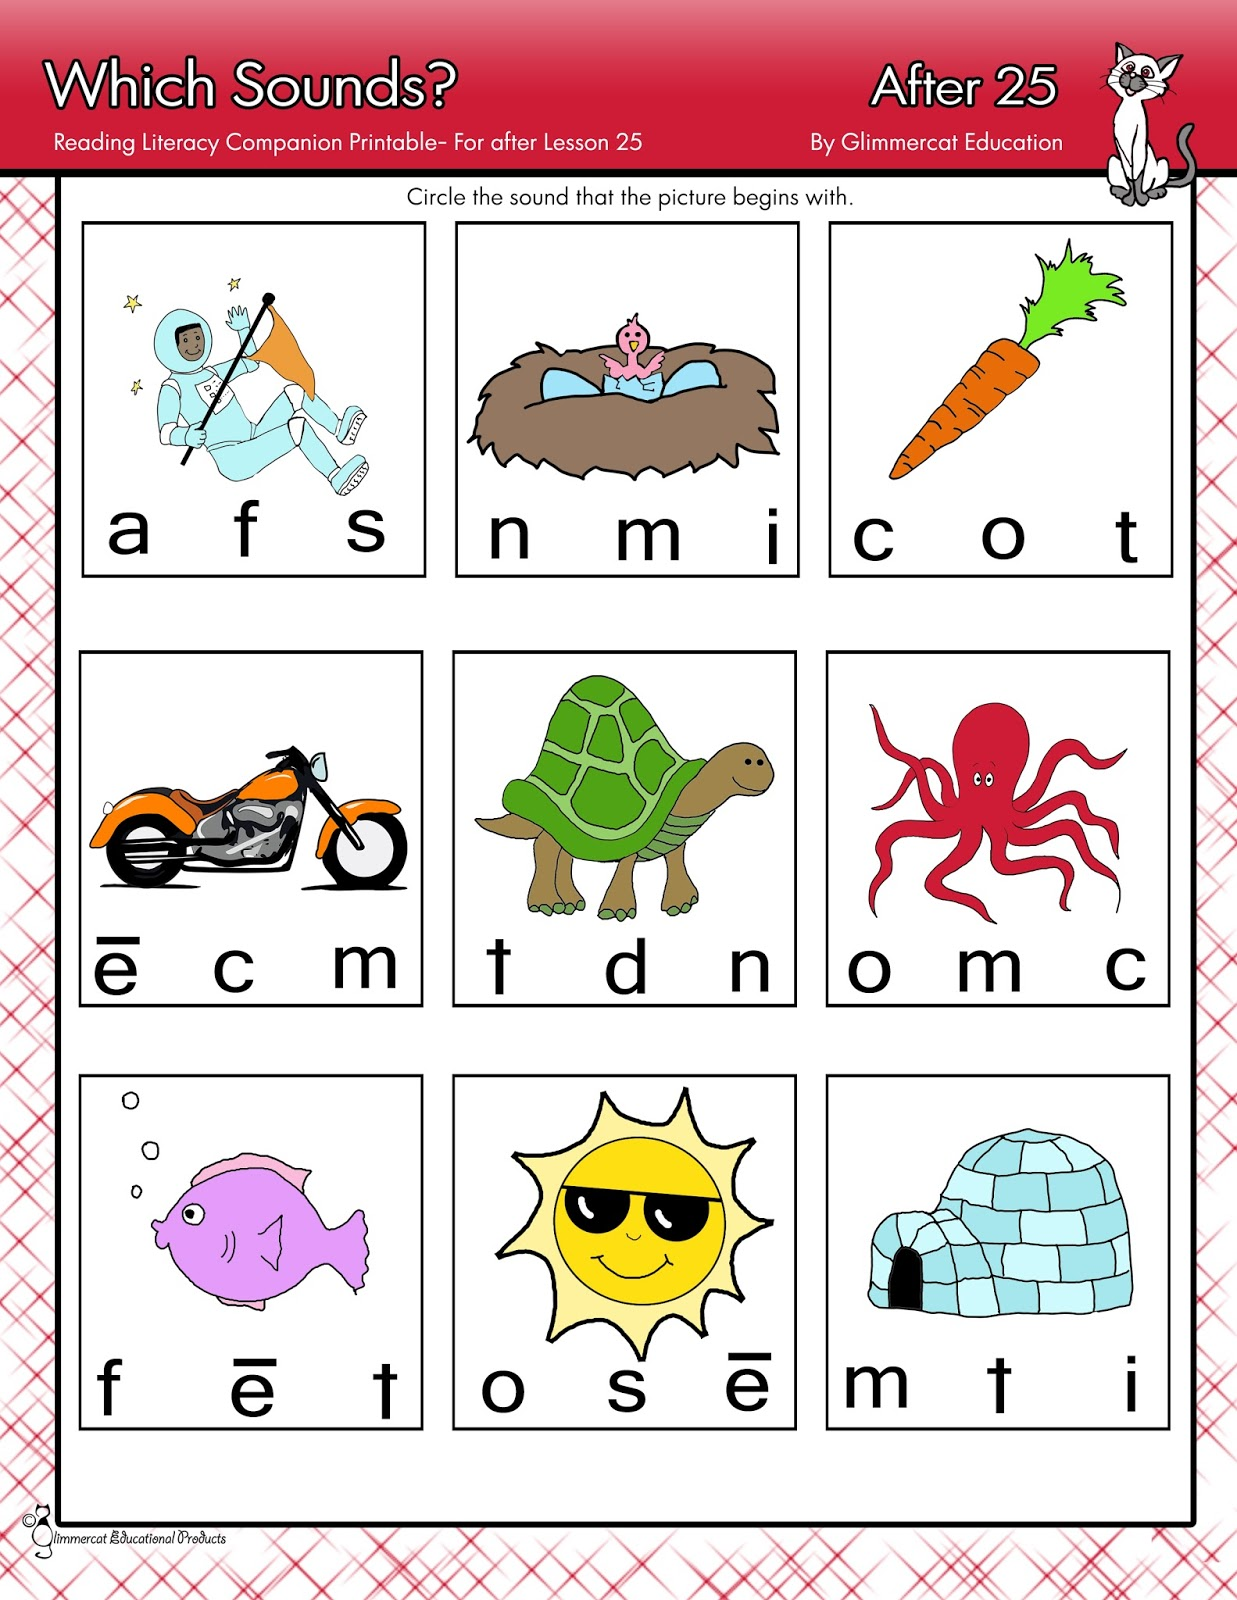 Worksheets Teach Your Child To Read In 100 Easy Lessons Worksheets glimmercat supplemental activities for teach your child to read in 100 easy lessons with my own kids mind i created some additional worksheets t